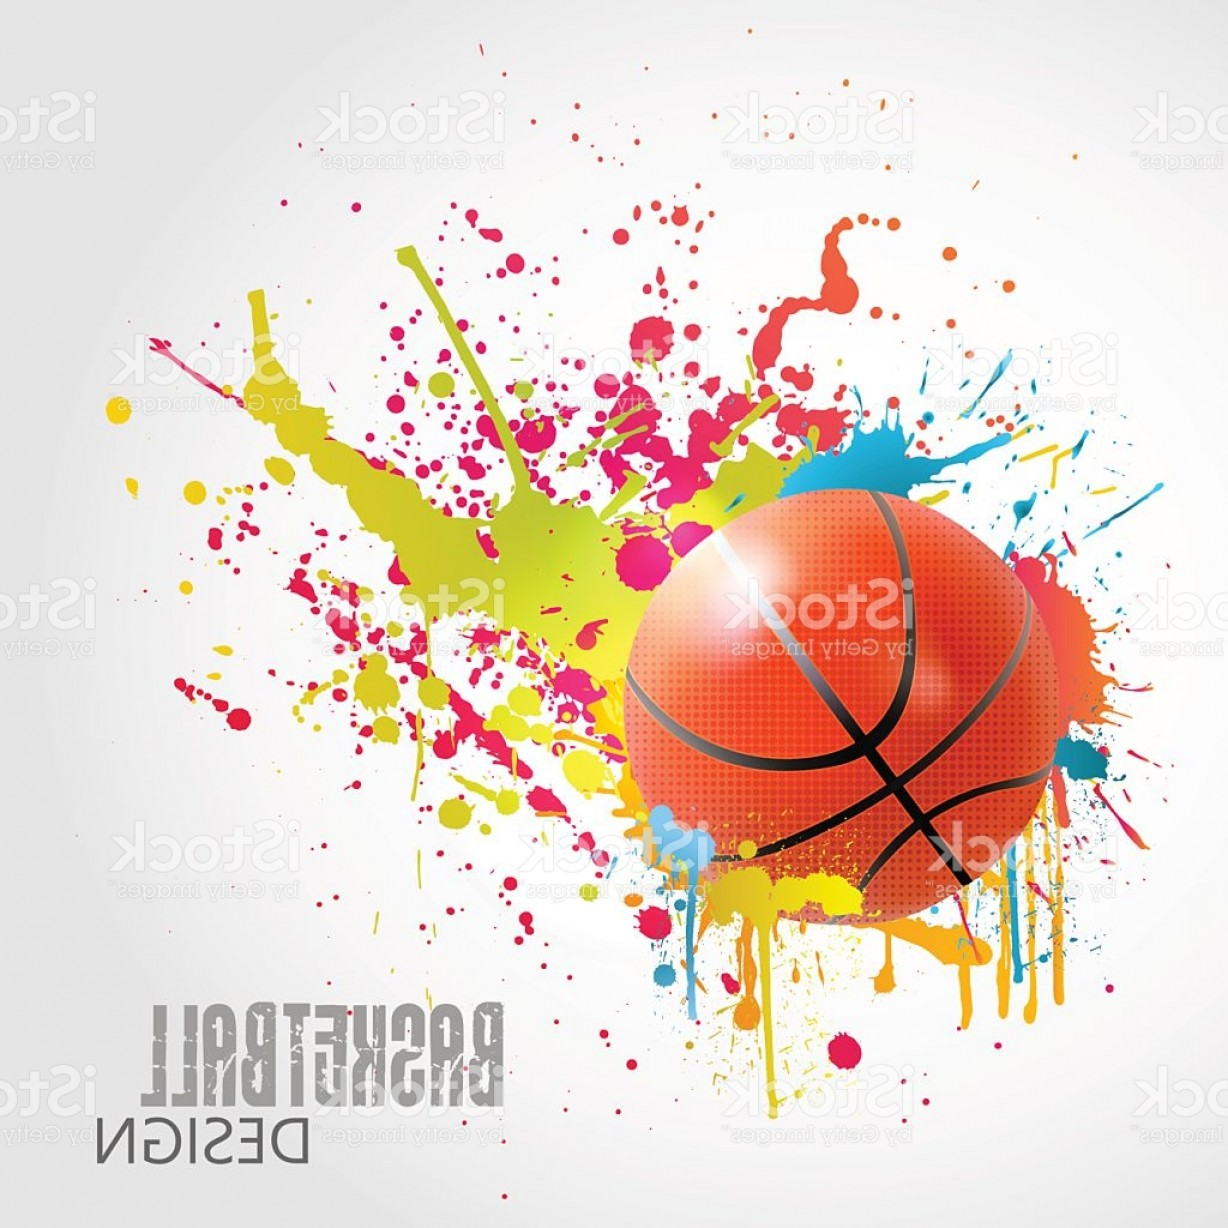 Basketball Vector Graphic Designs: Vector Basketball Design With Ball And Colorful Splashes Gm